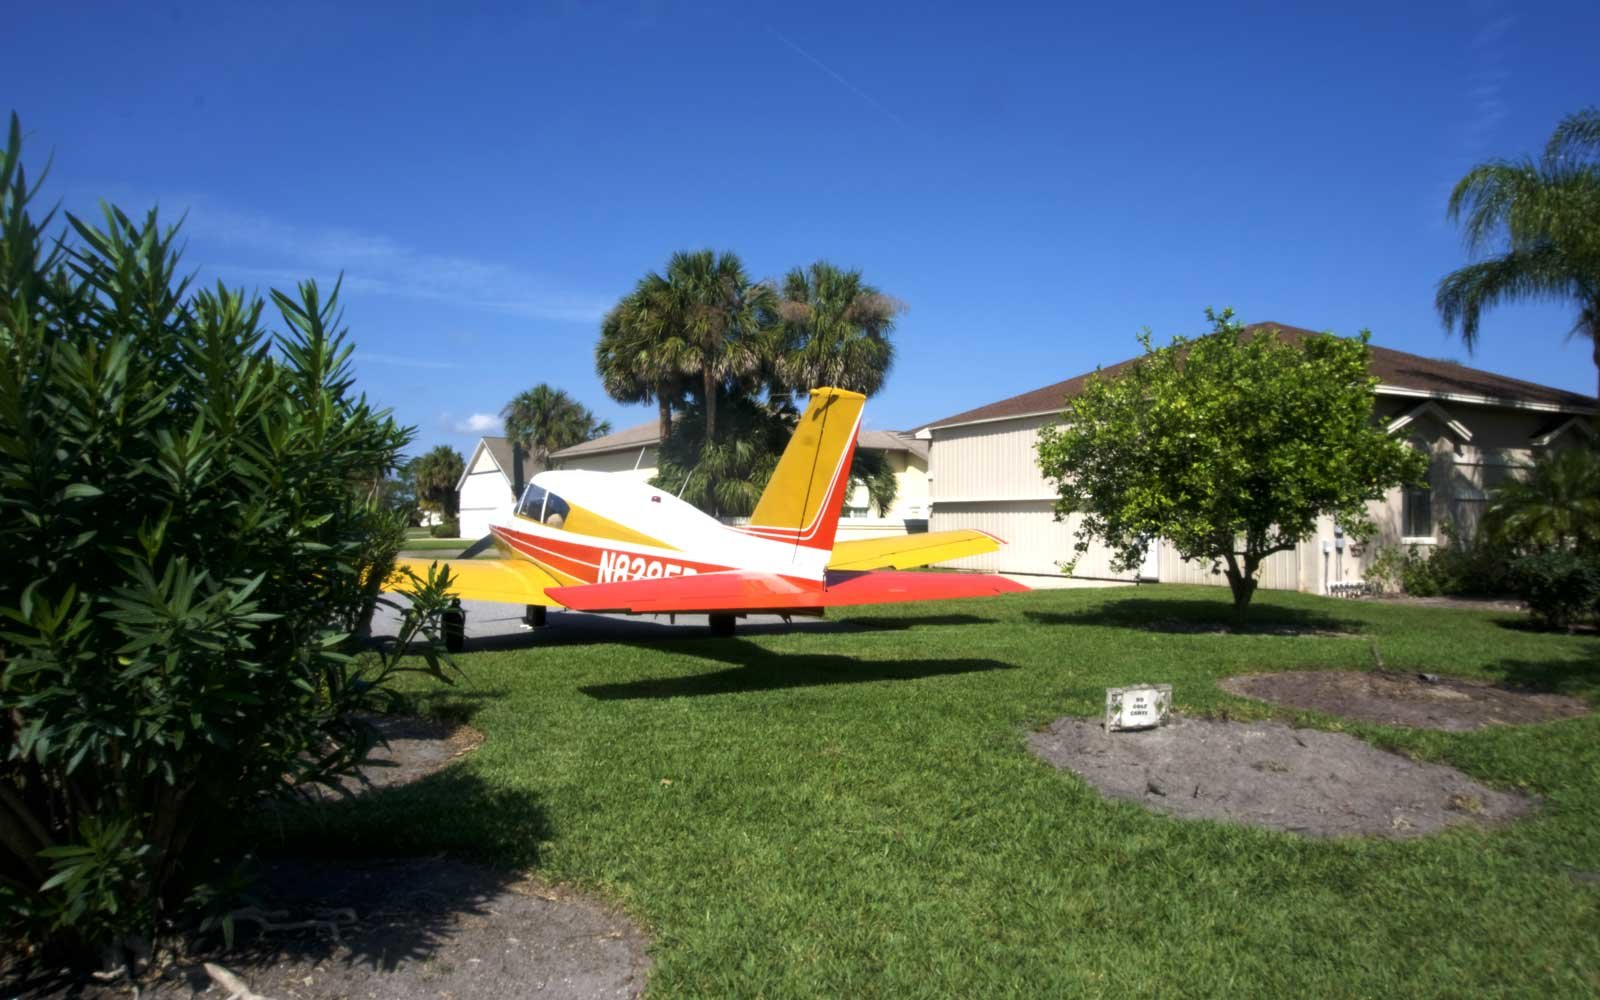 Welcome To Spruce Creek Where You Can Park Your Plane In Your